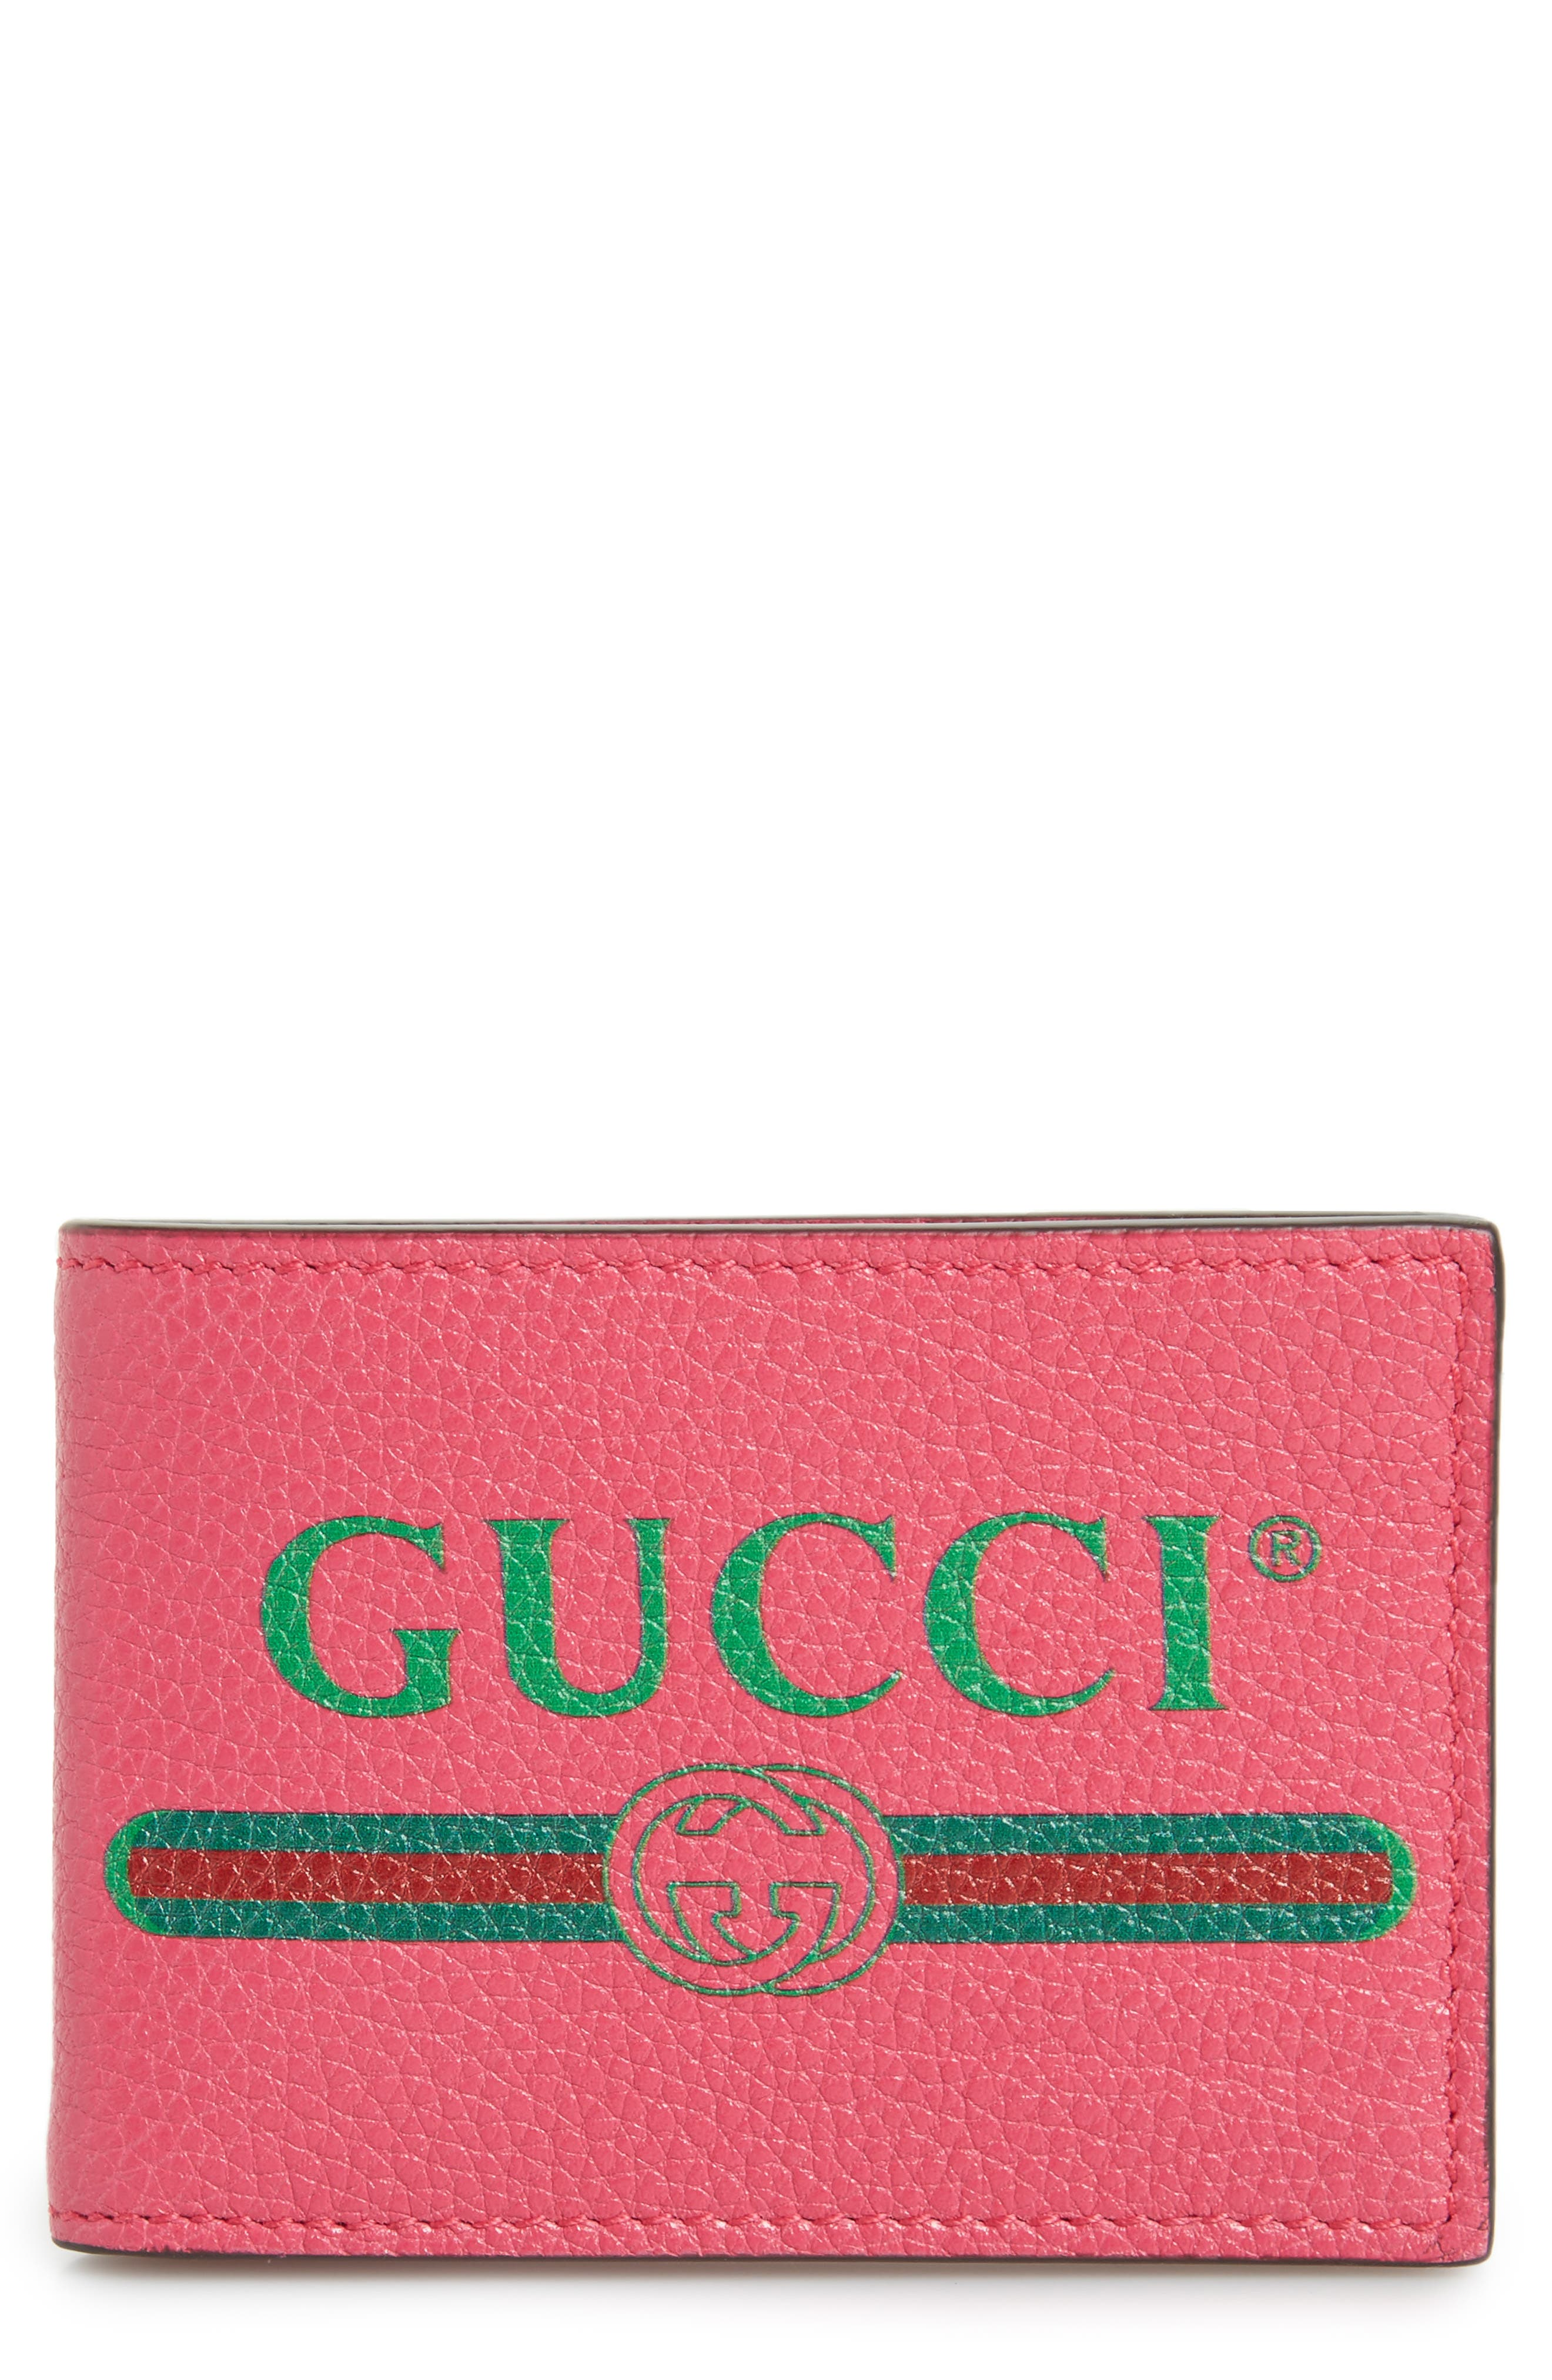 Gucci Bifold Leather Wallet